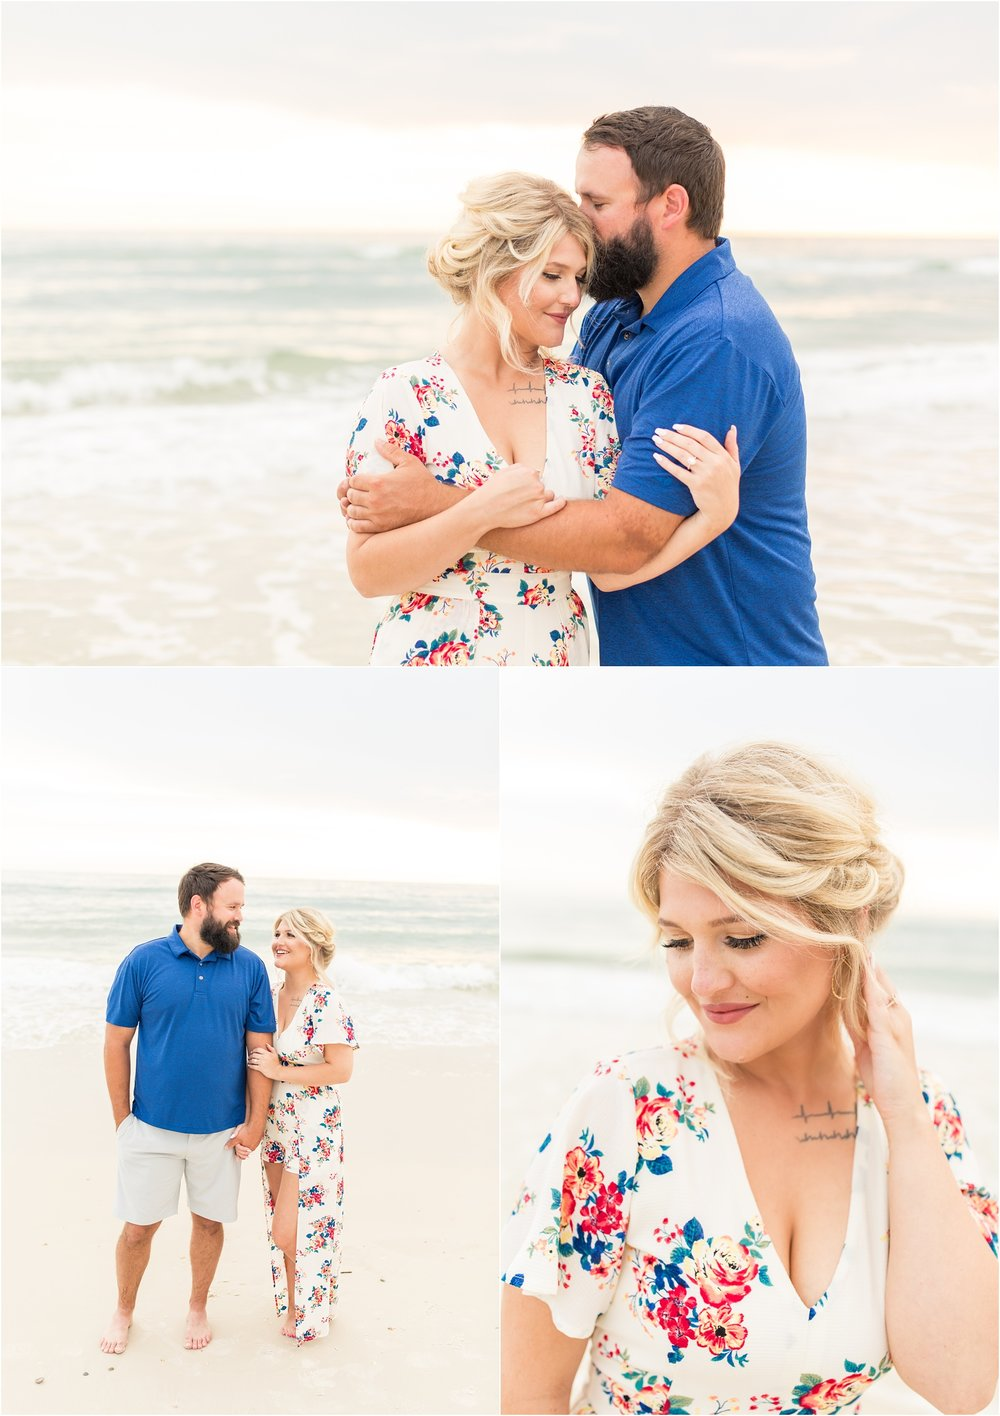 Savannah Eve Photography- Madison & Tim's Engagements-13.jpg